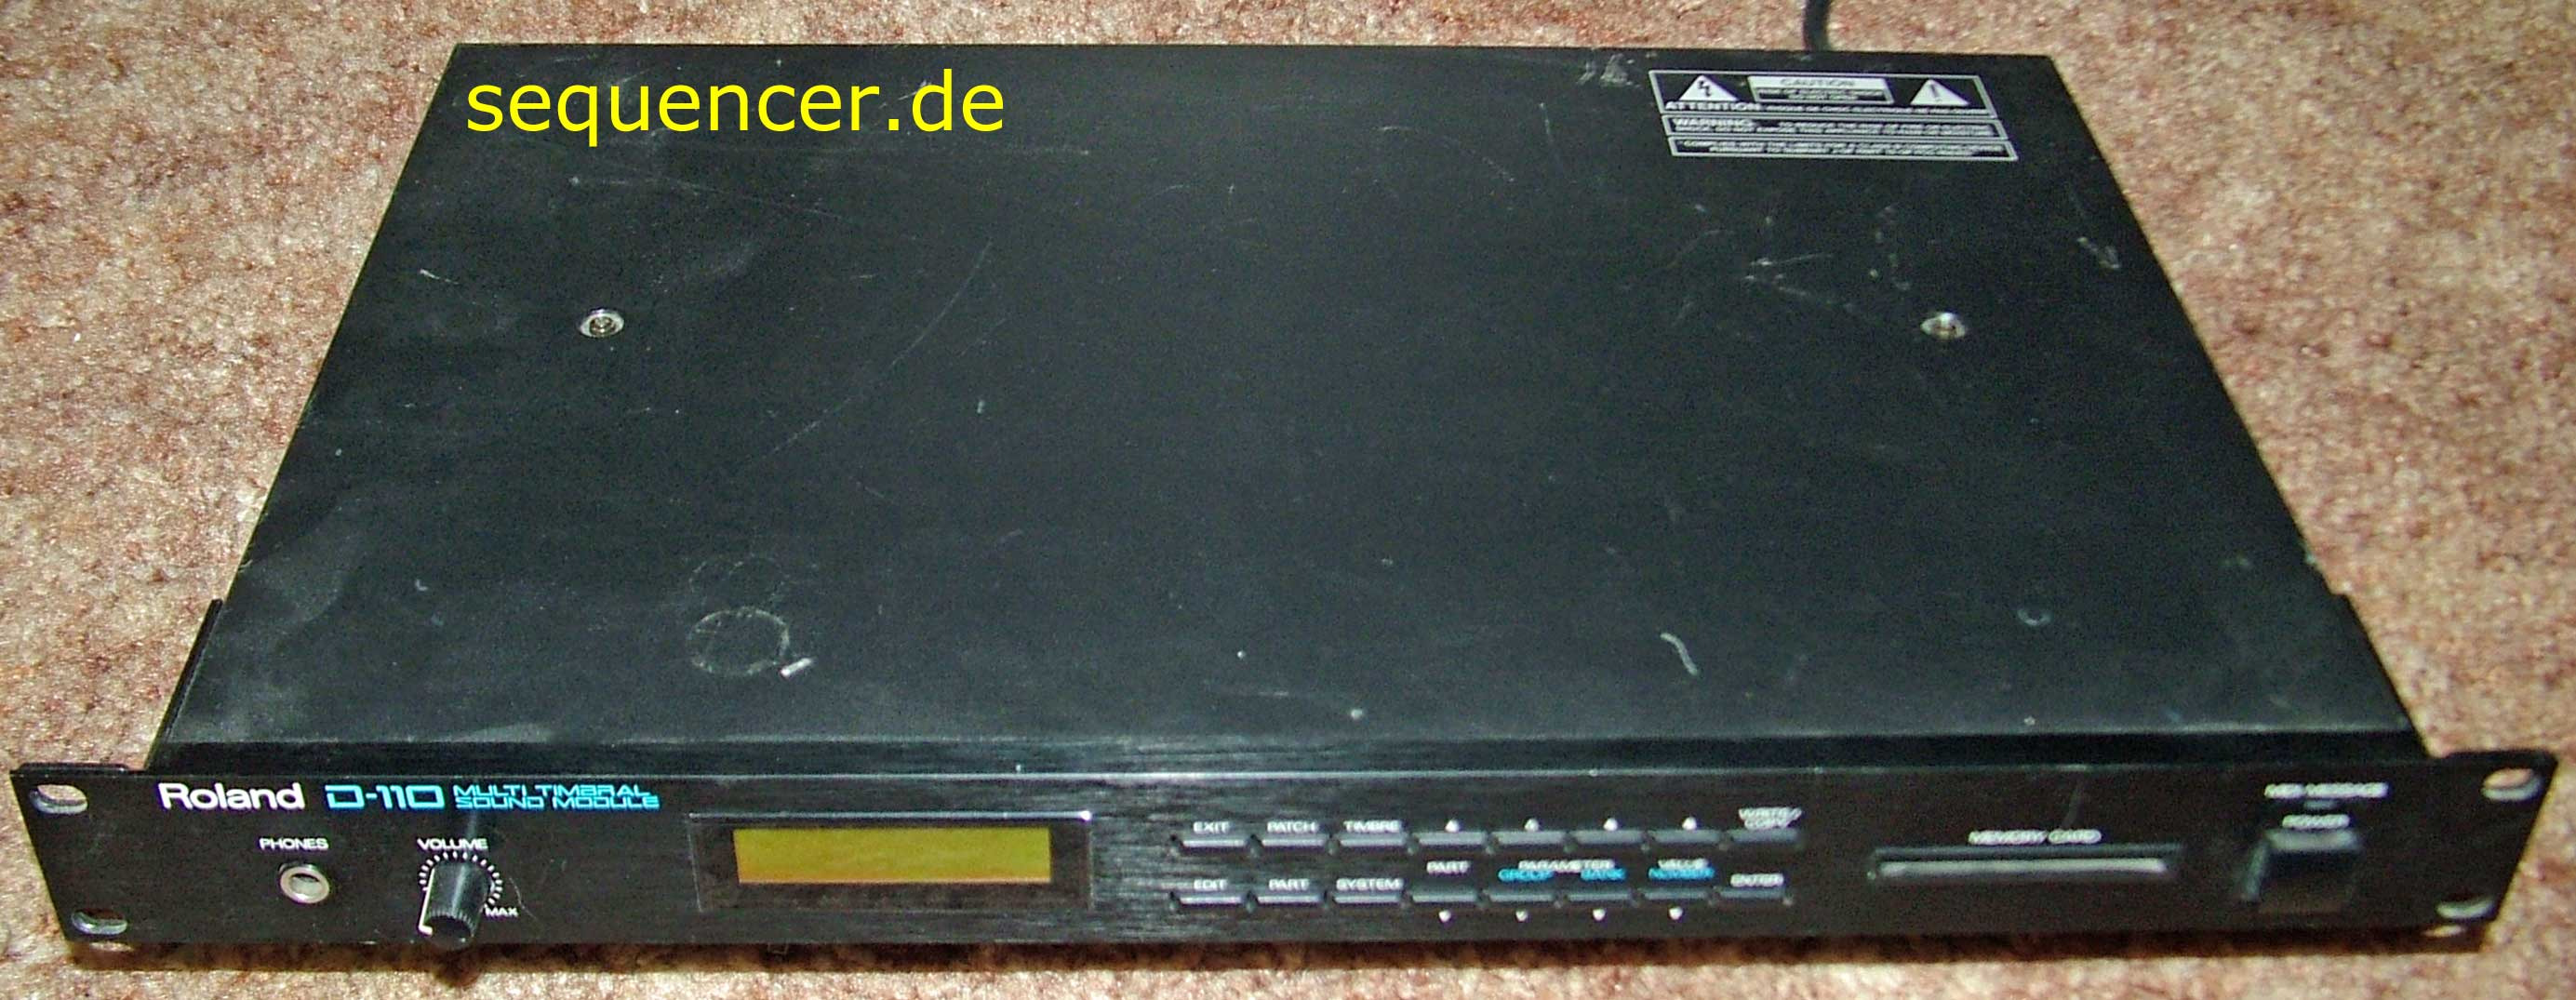 D-110 Rack D-110 Rack synthesizer